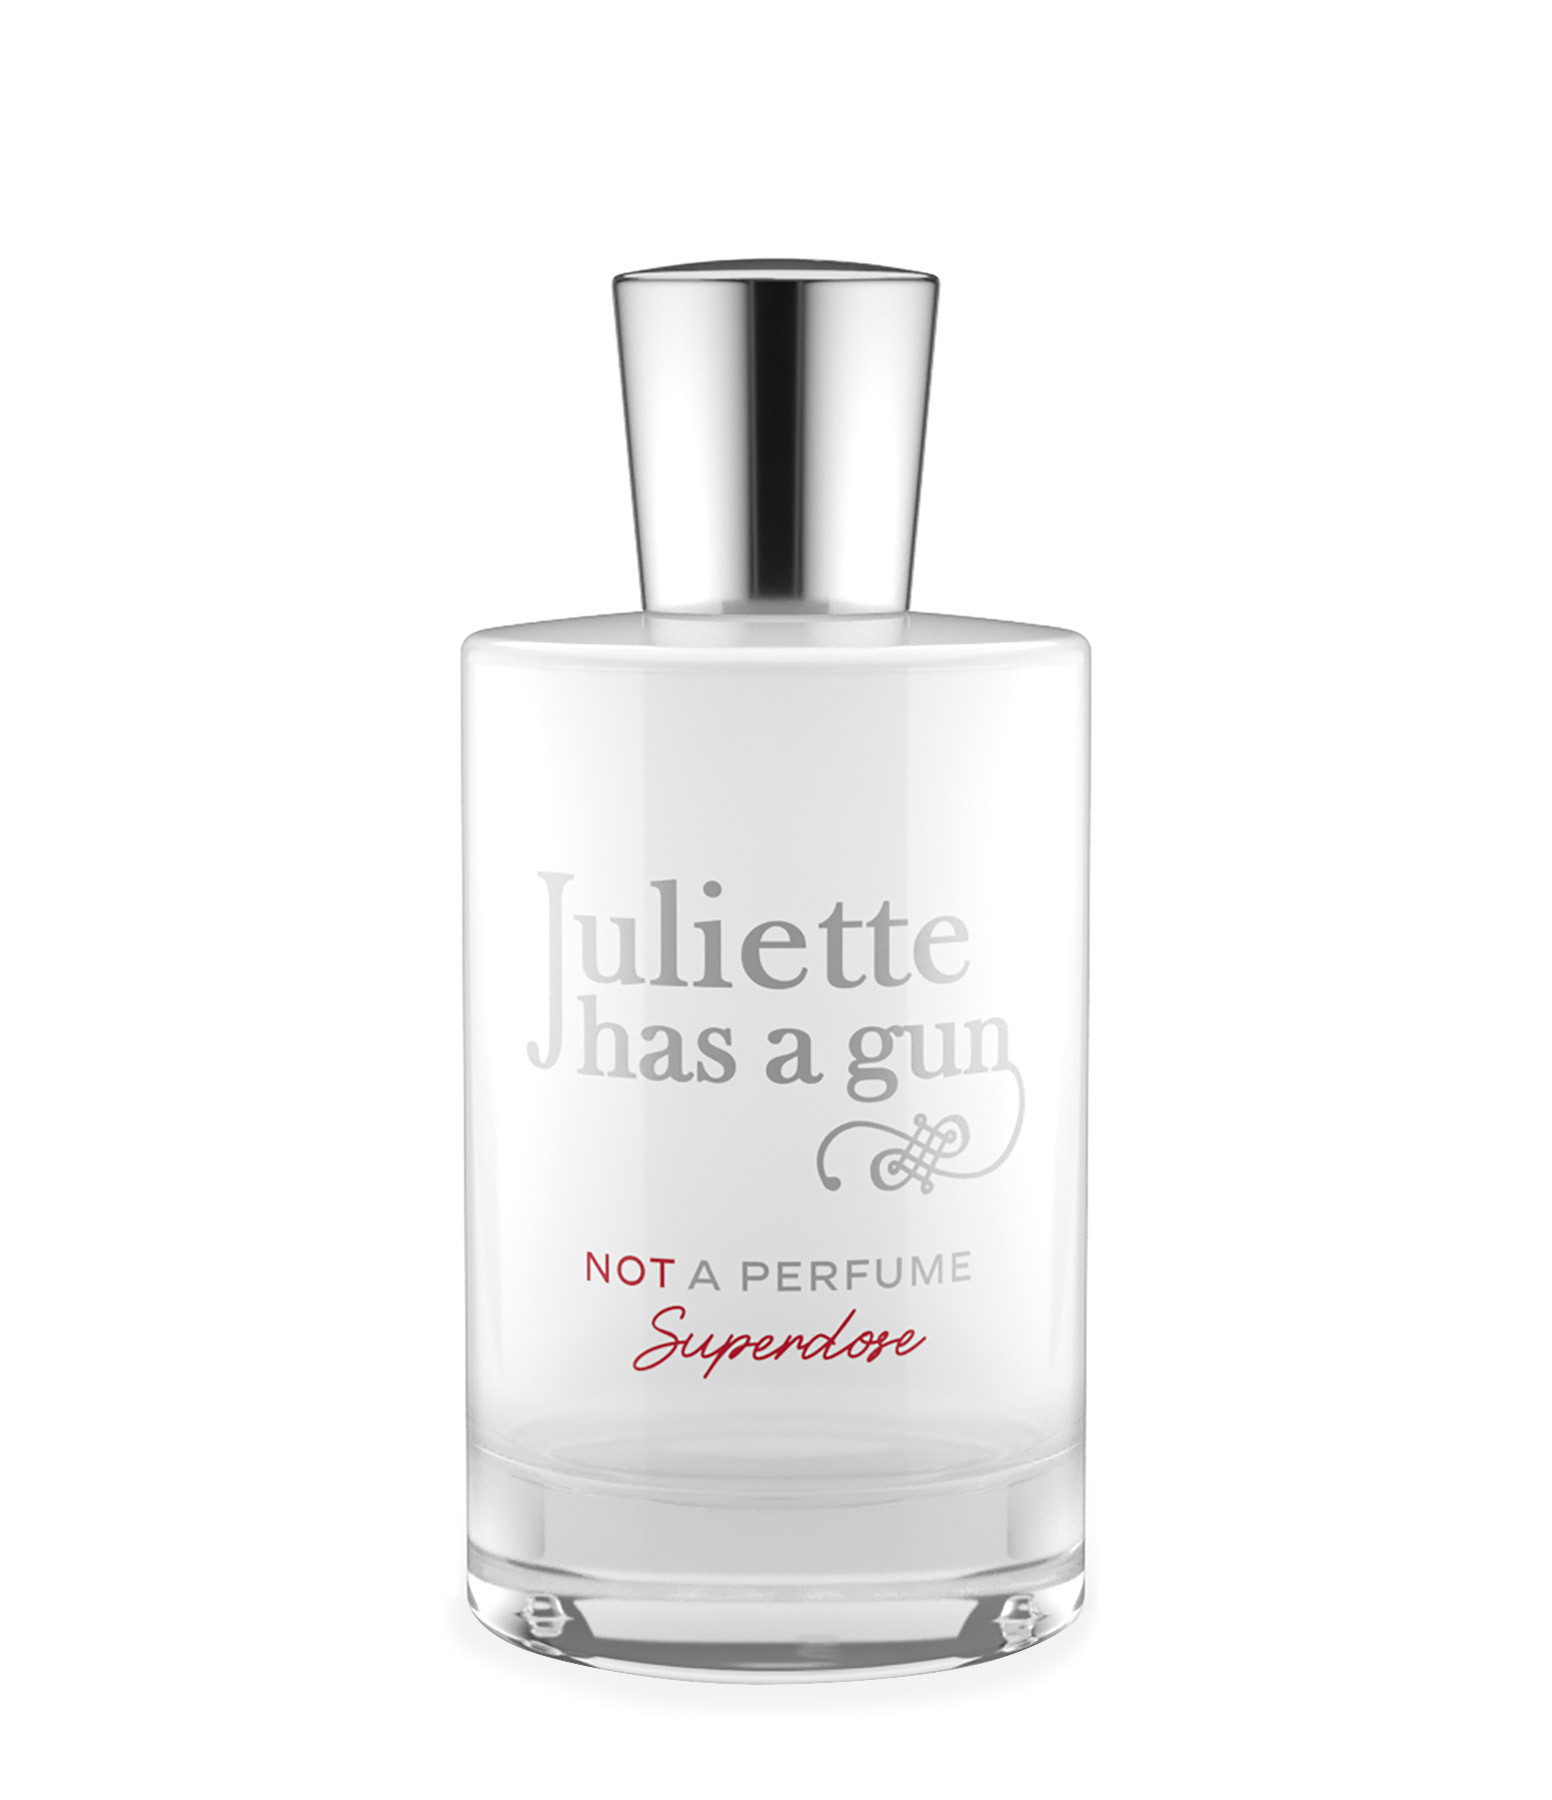 JULIETTE HAS A GUN - Eau de parfum Superdose 100 ml